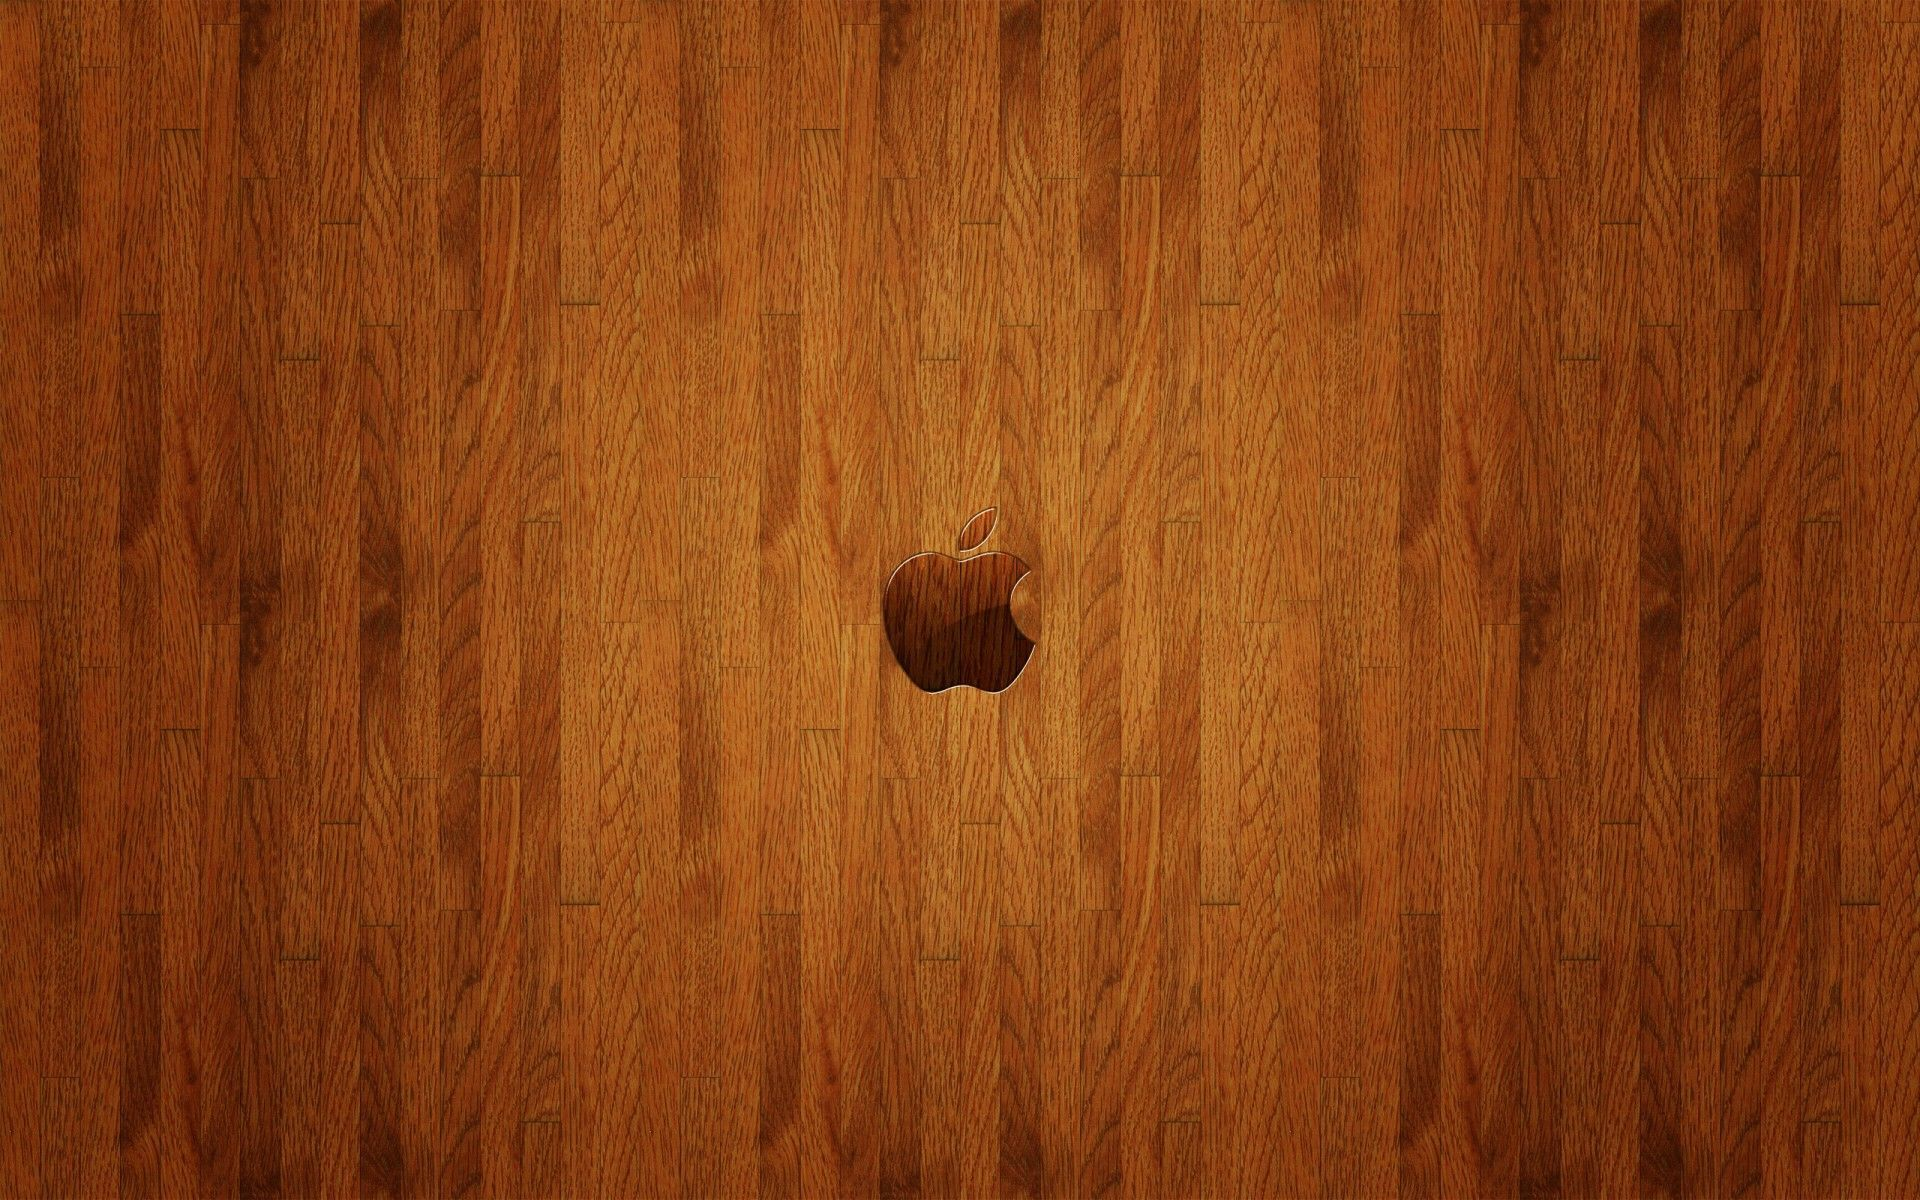 Wood Wallpapers 1080p Apple Logo Wallpaper Apple Logo Logo Wallpaper Hd